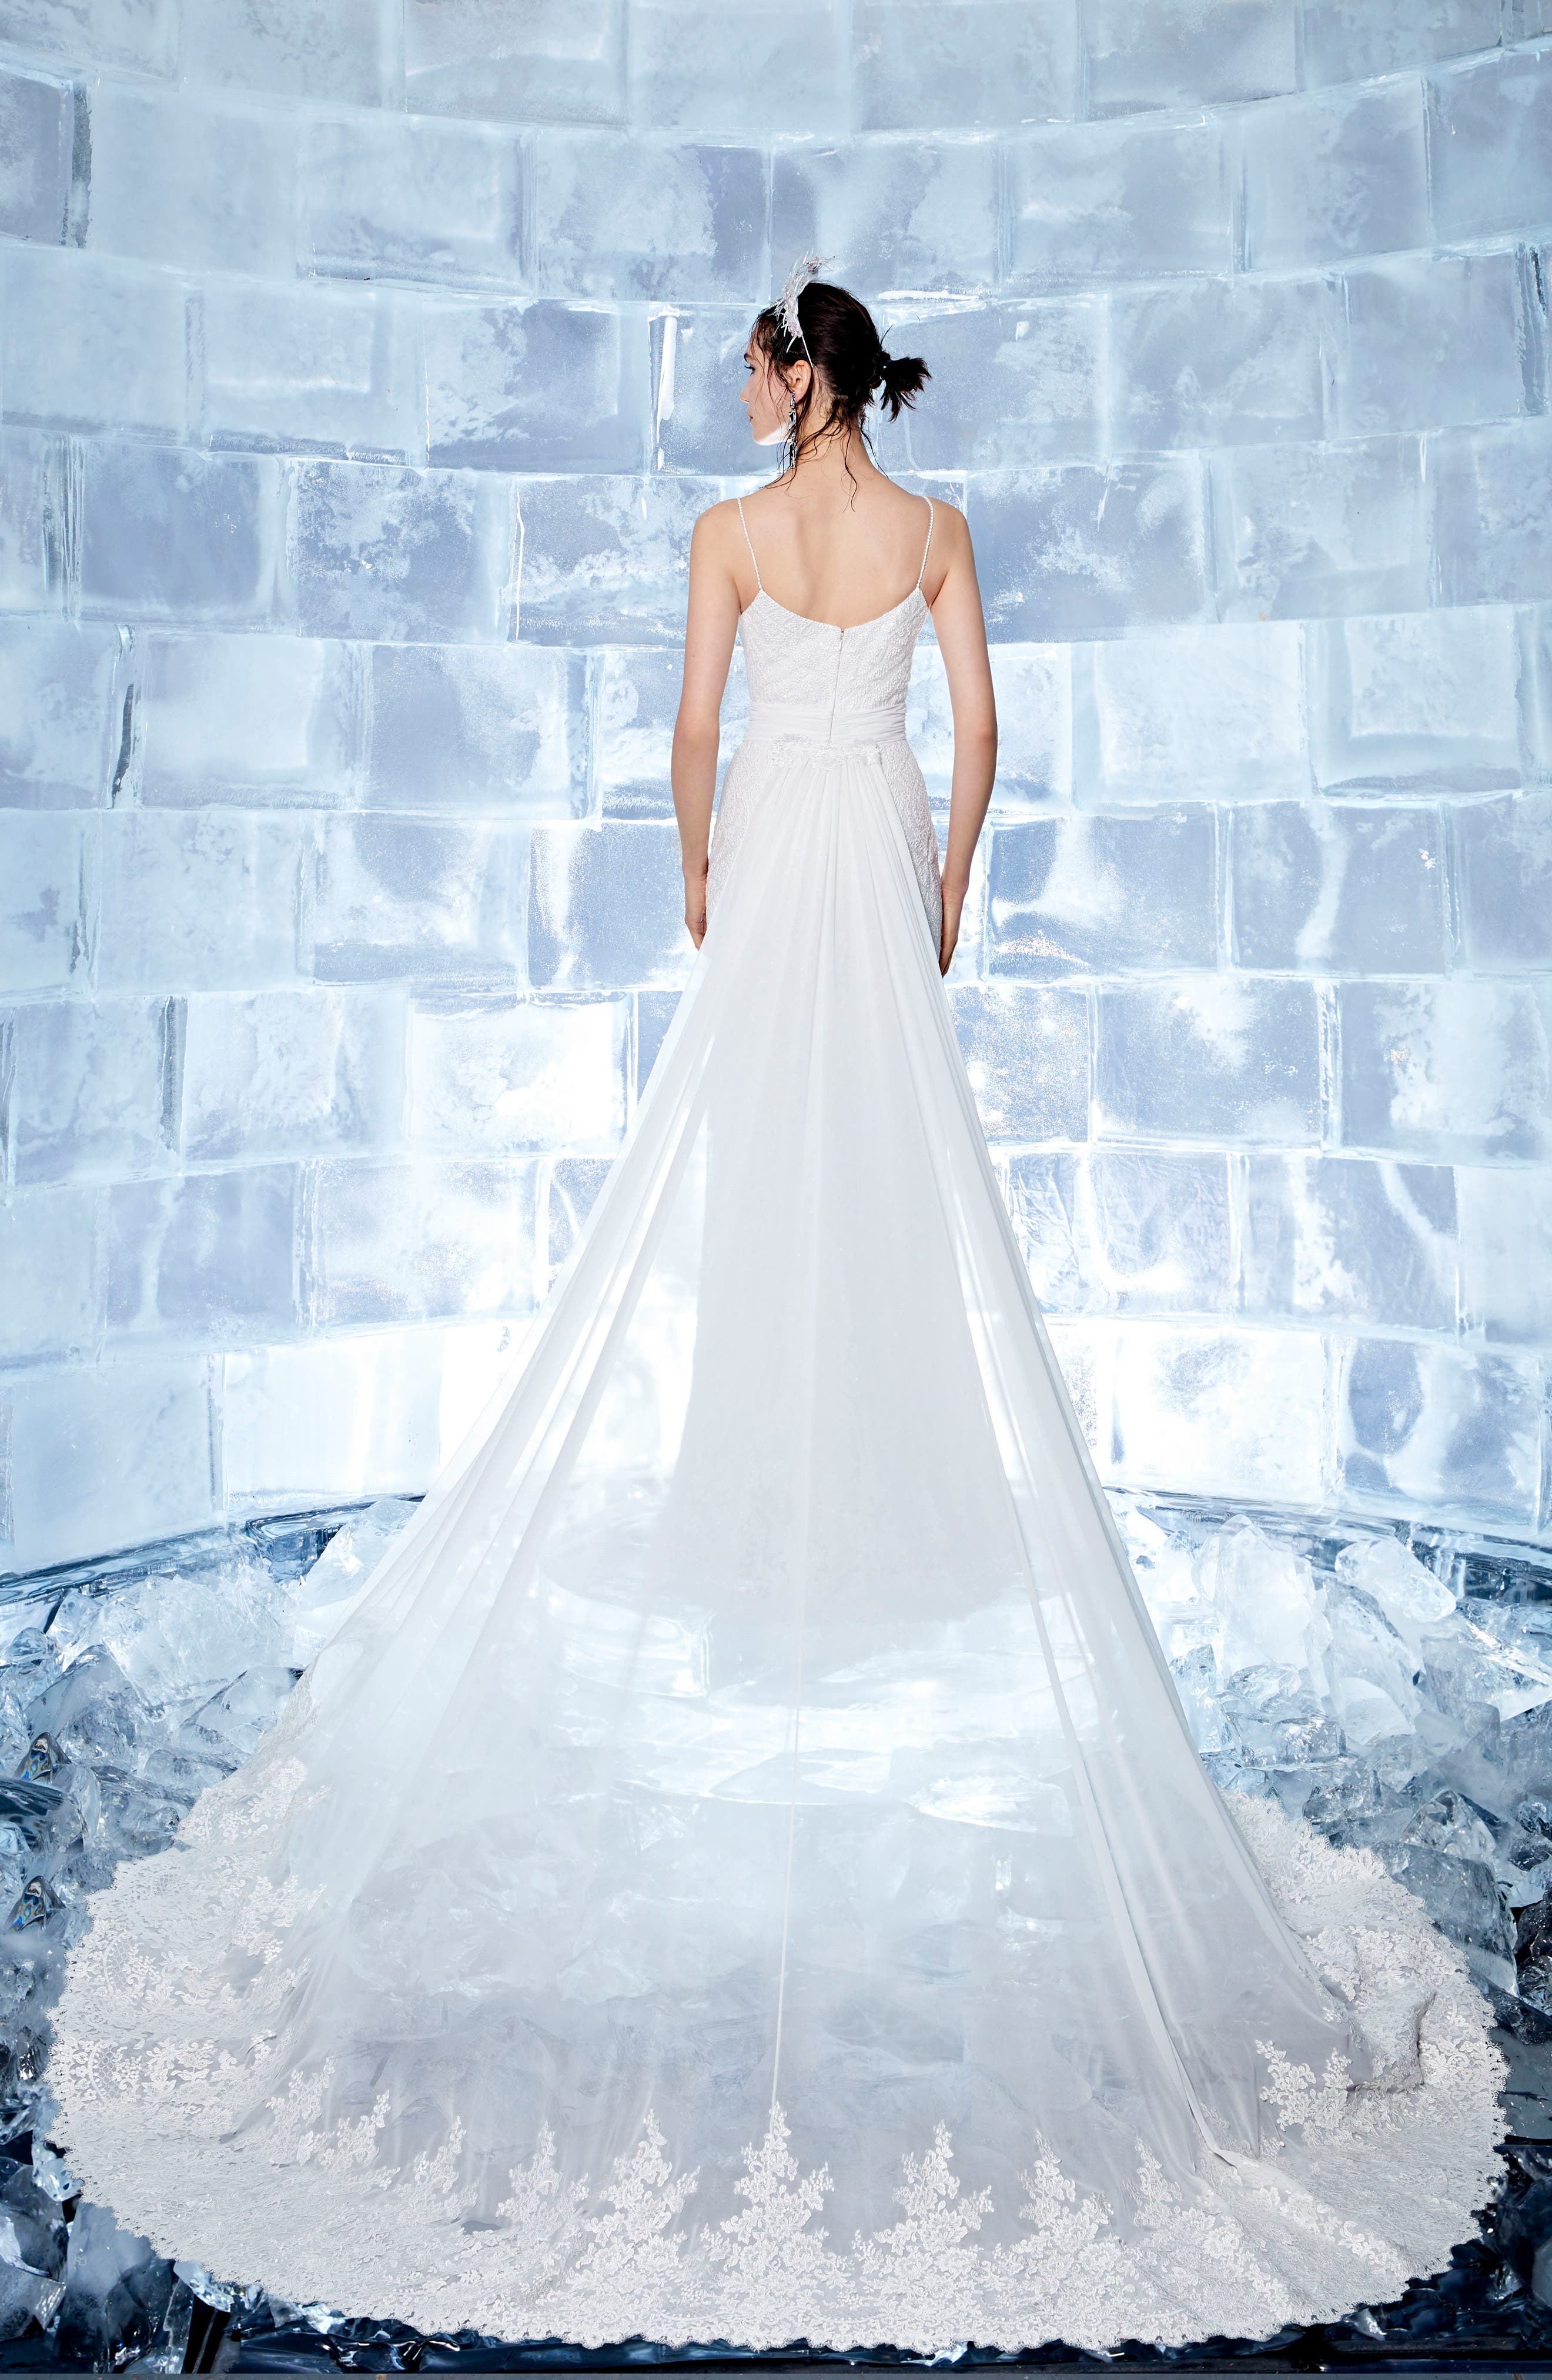 Iclyn Beaded Slipgown,                             Alternate thumbnail 2, color,                             OFF WHITE